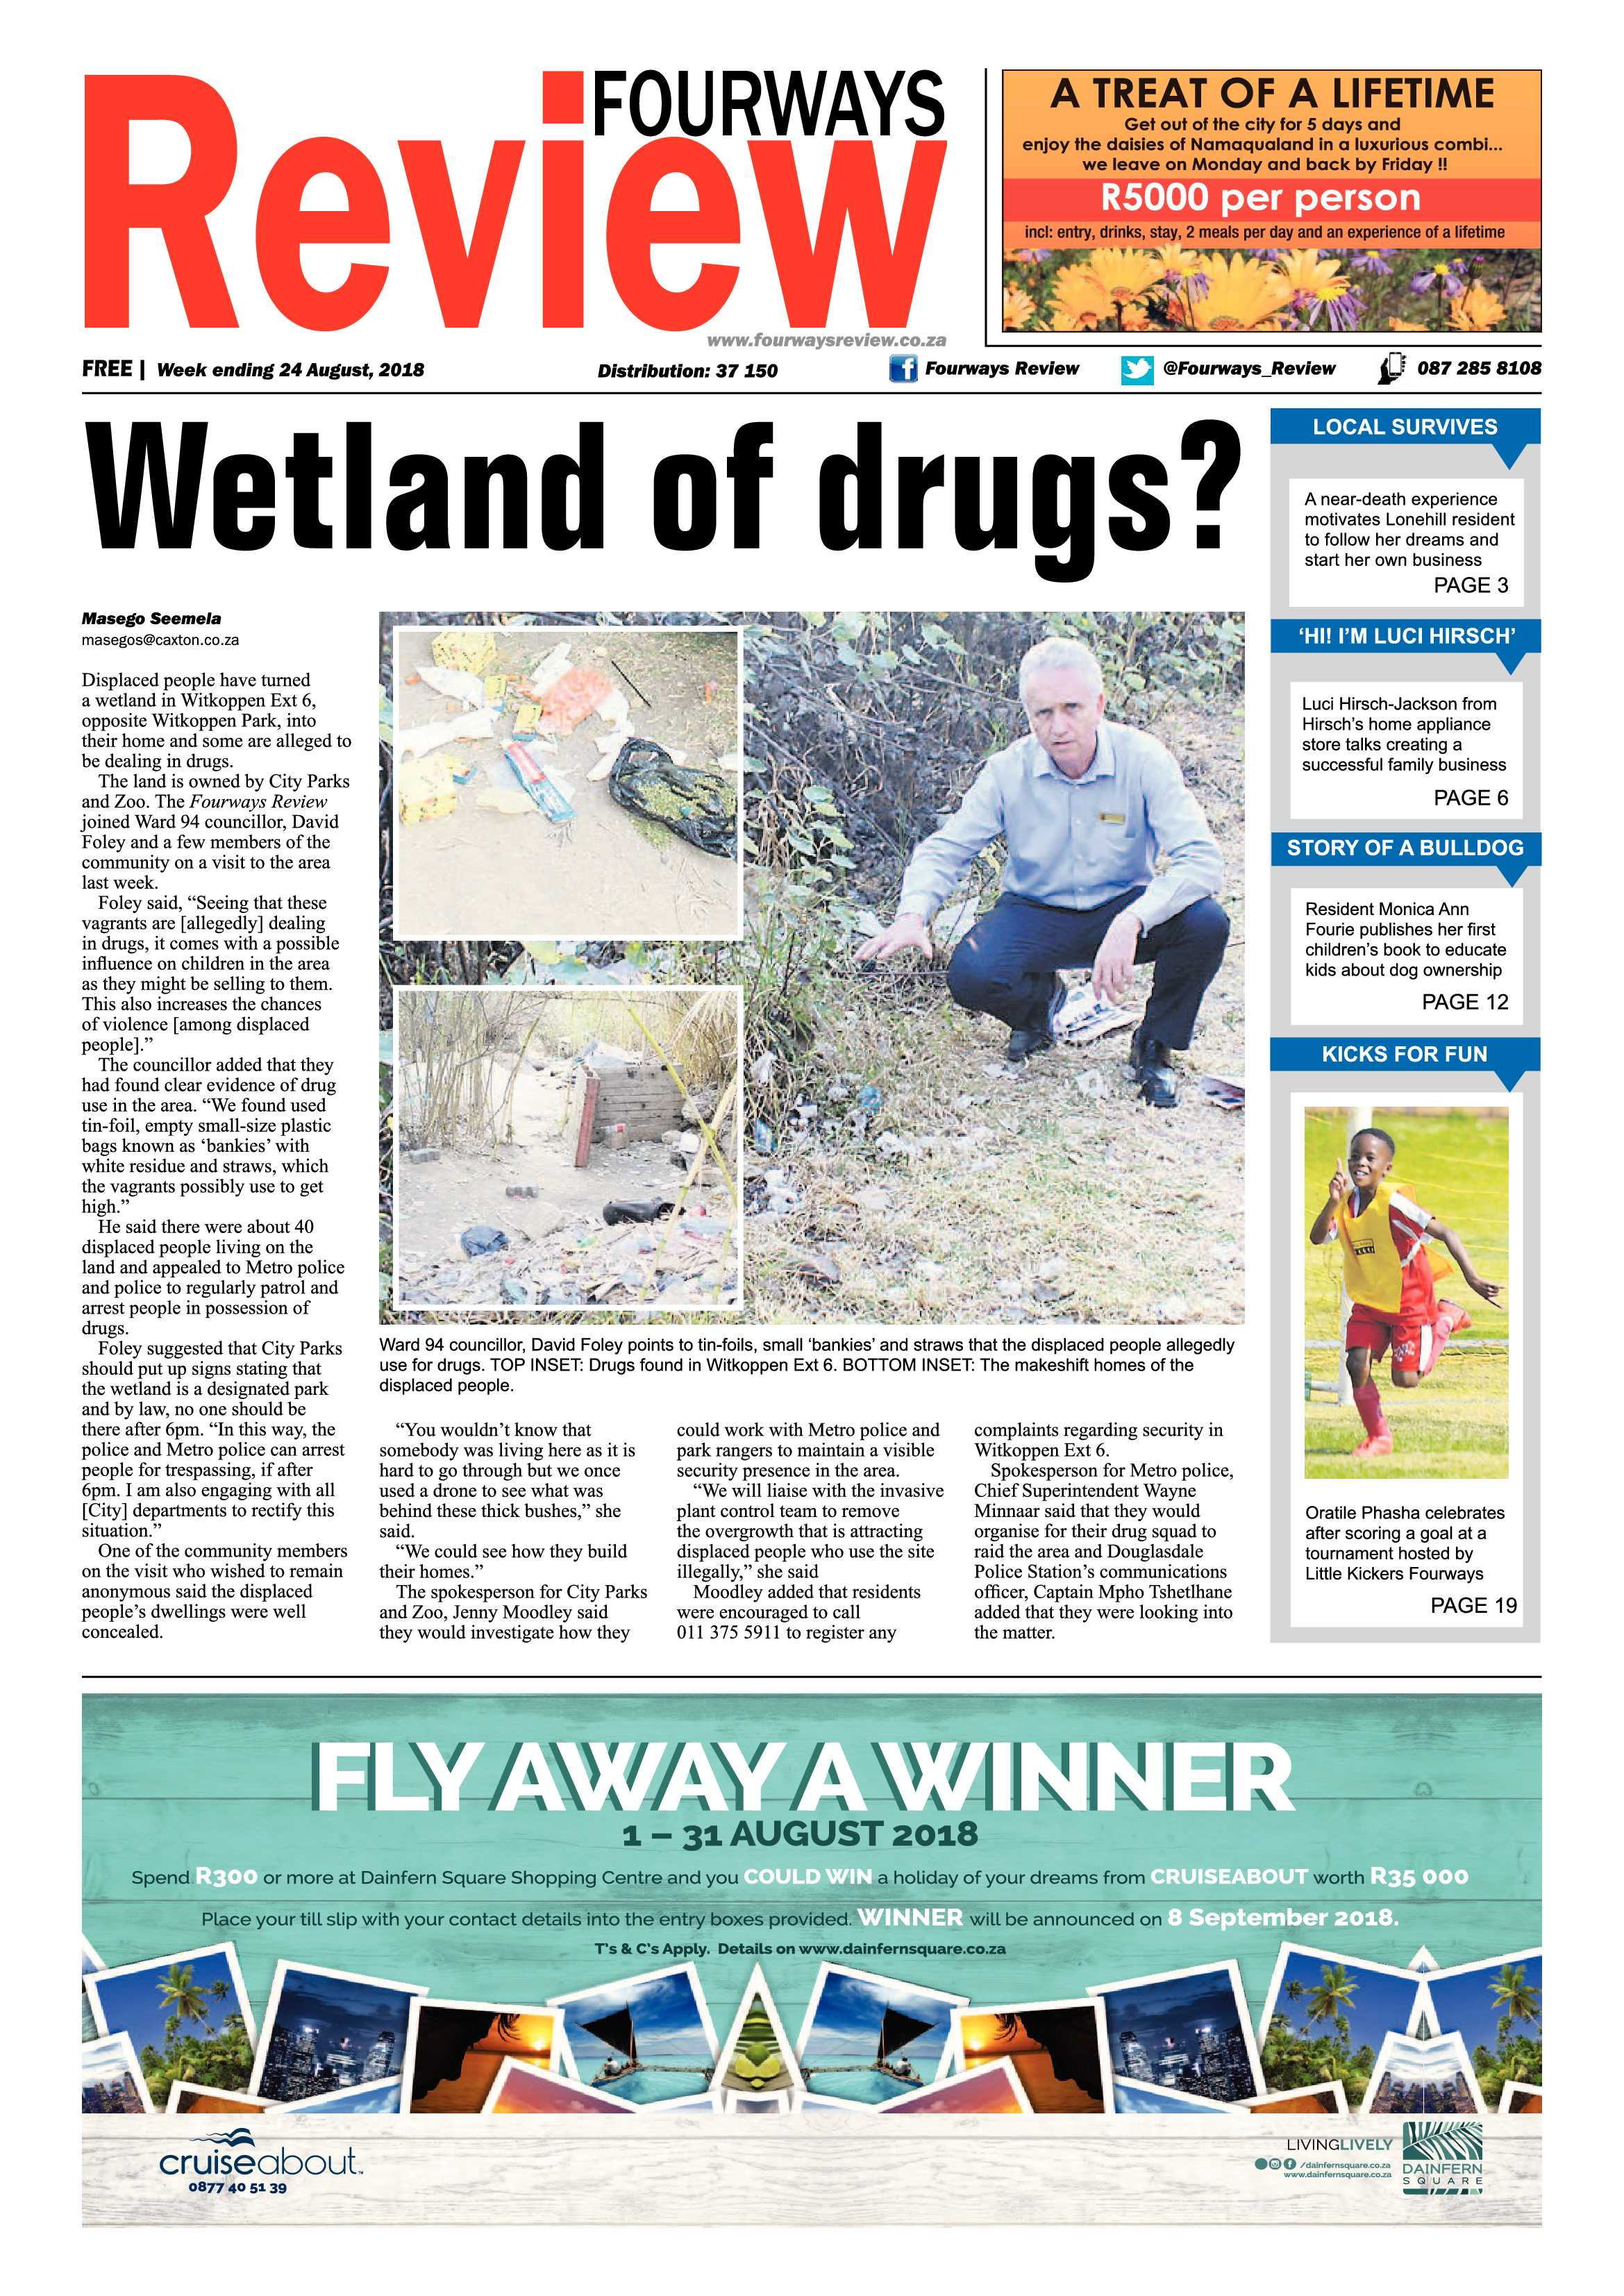 Fourways review 24 august 2018 fourways review fourways review 24 august 2018 epapers page 1 reheart Choice Image